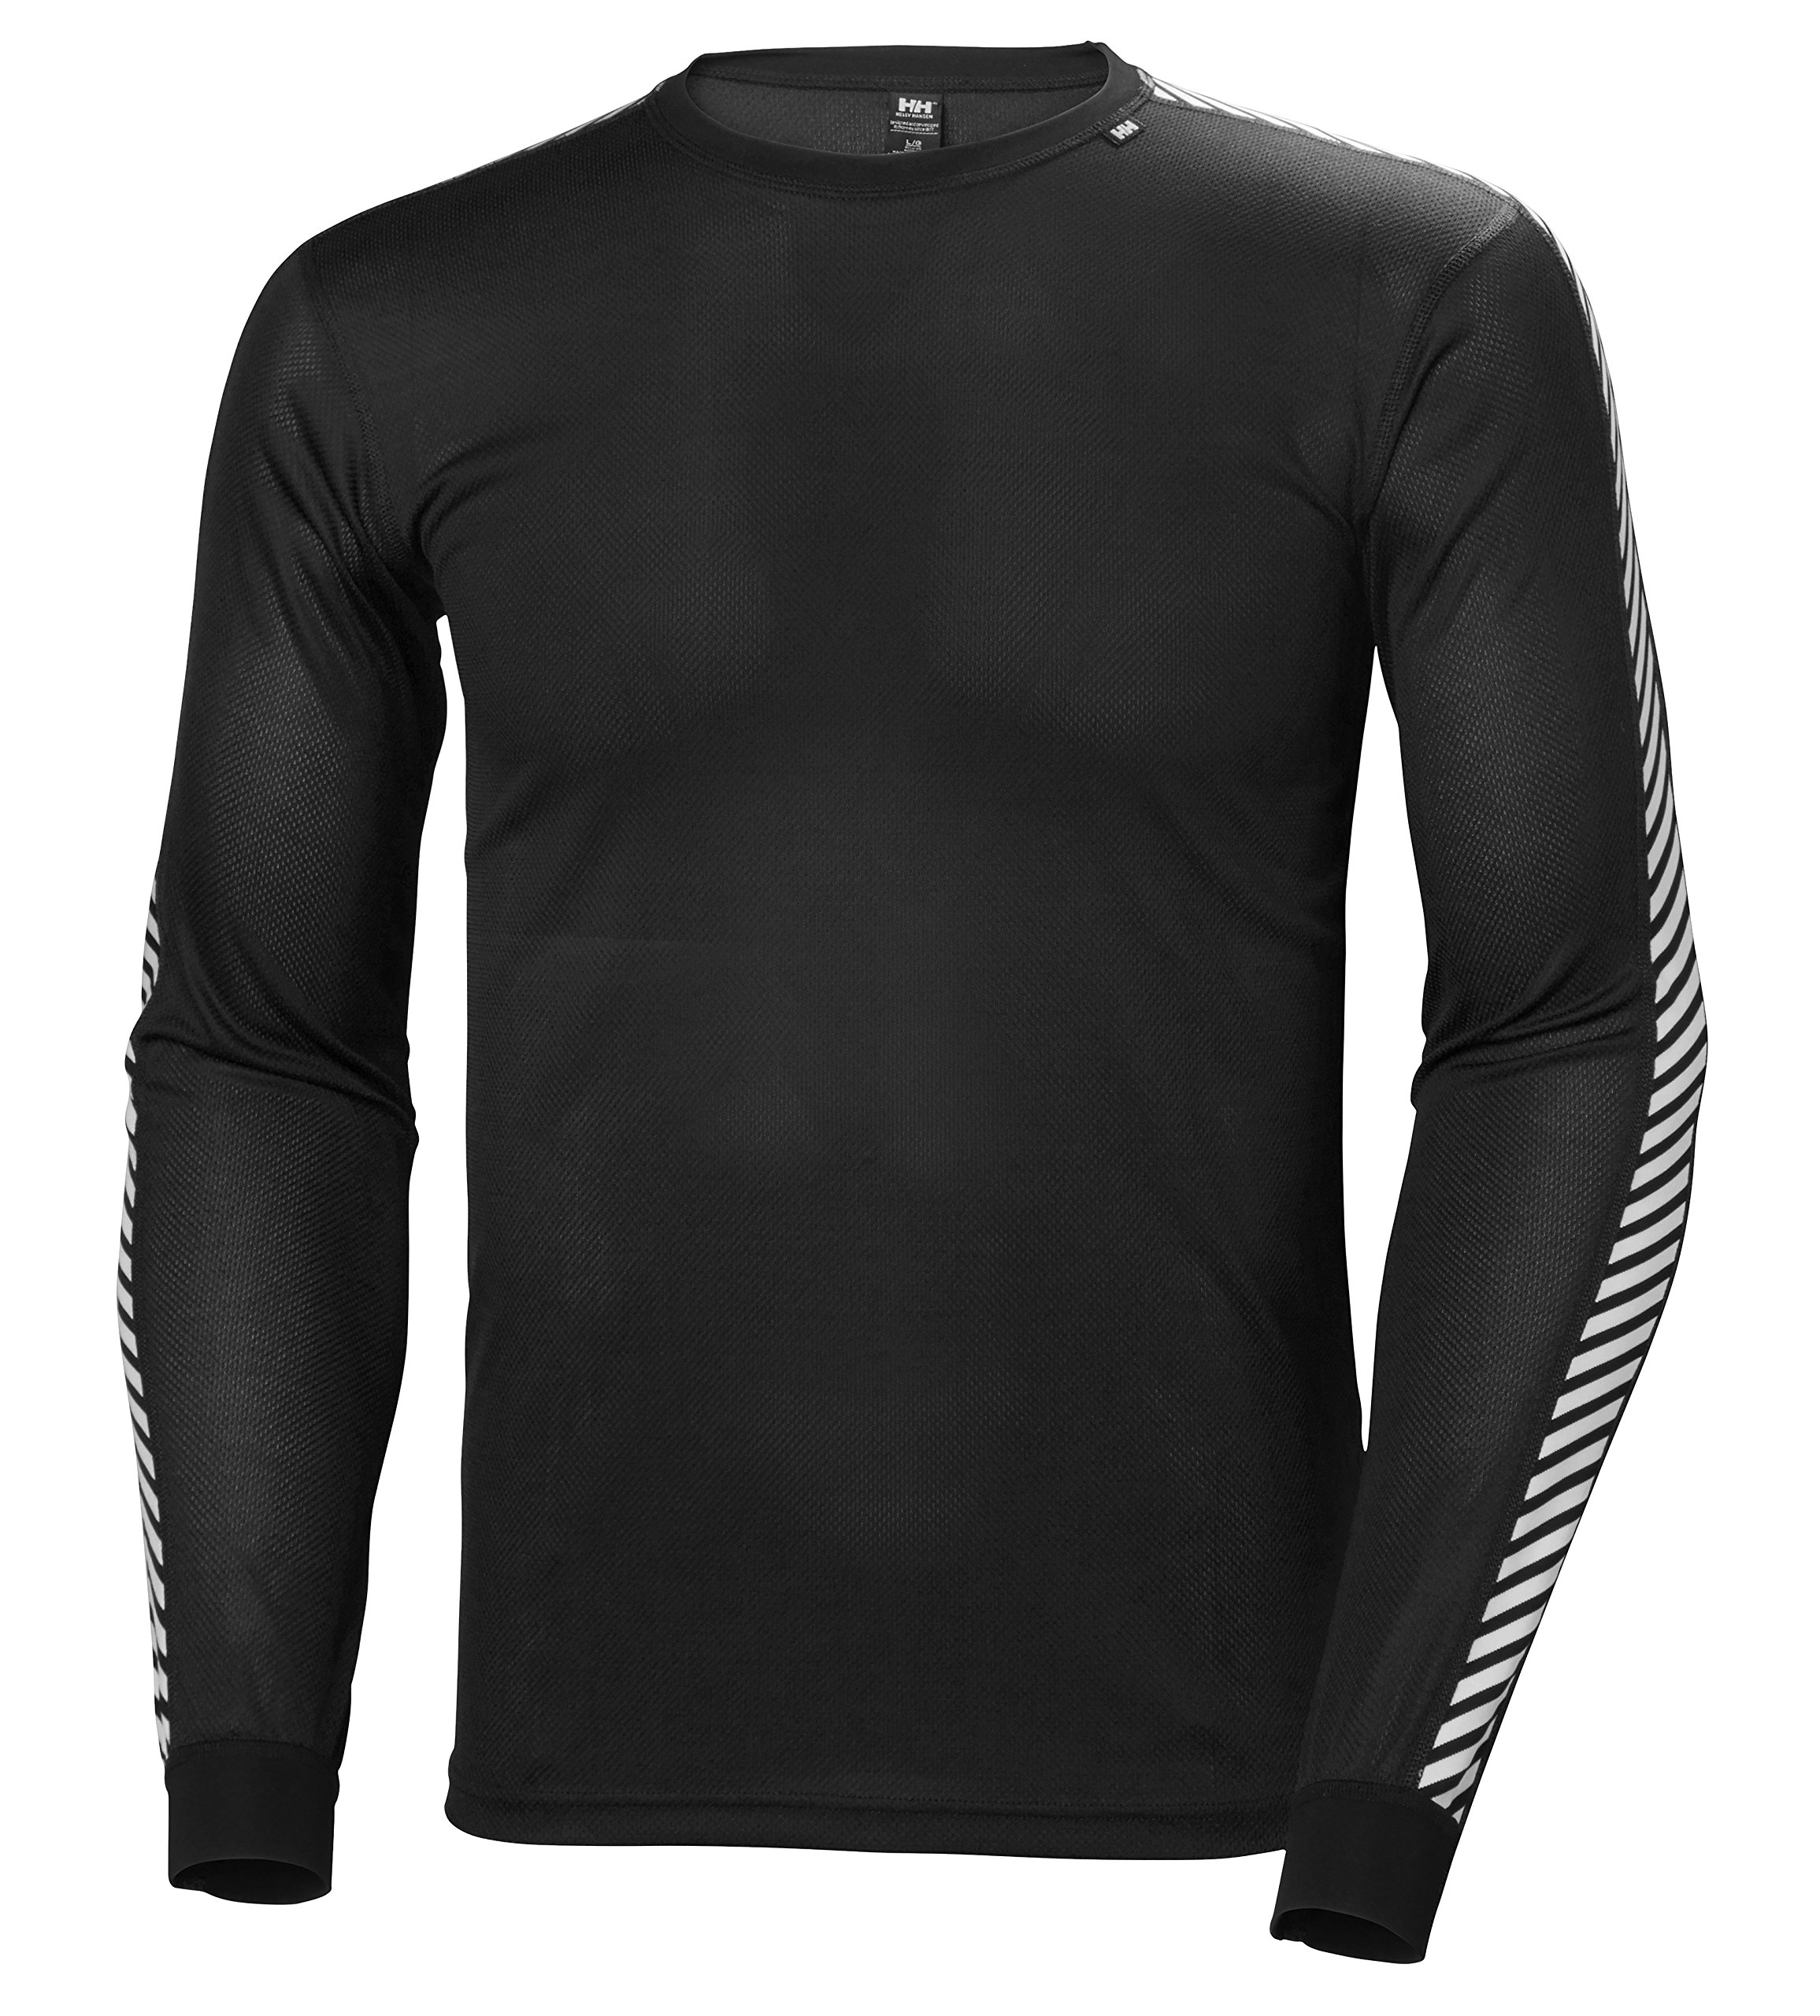 Helly Hansen Men's Lifa Stripe Crew Lightweight Breathable Moisture Wicking Thermal Baselayer, 998 Black, Large